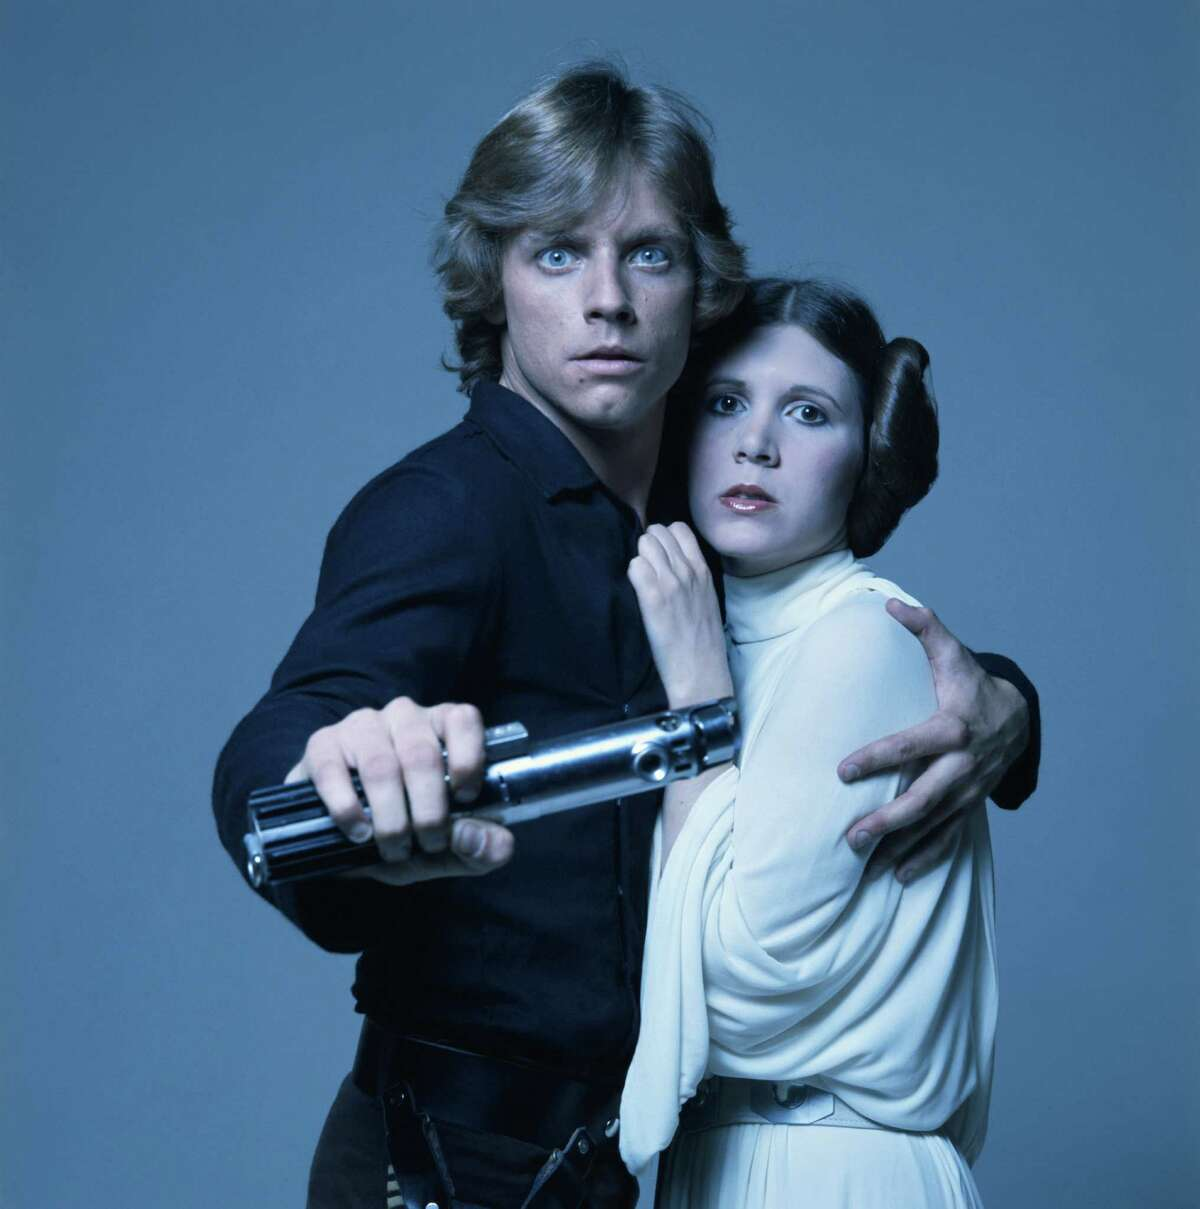 Mark Hamill saved the universe in the Star Wars trilogy. So maybe a 3-hit wonder, but Harrison Ford kind of stole the show in